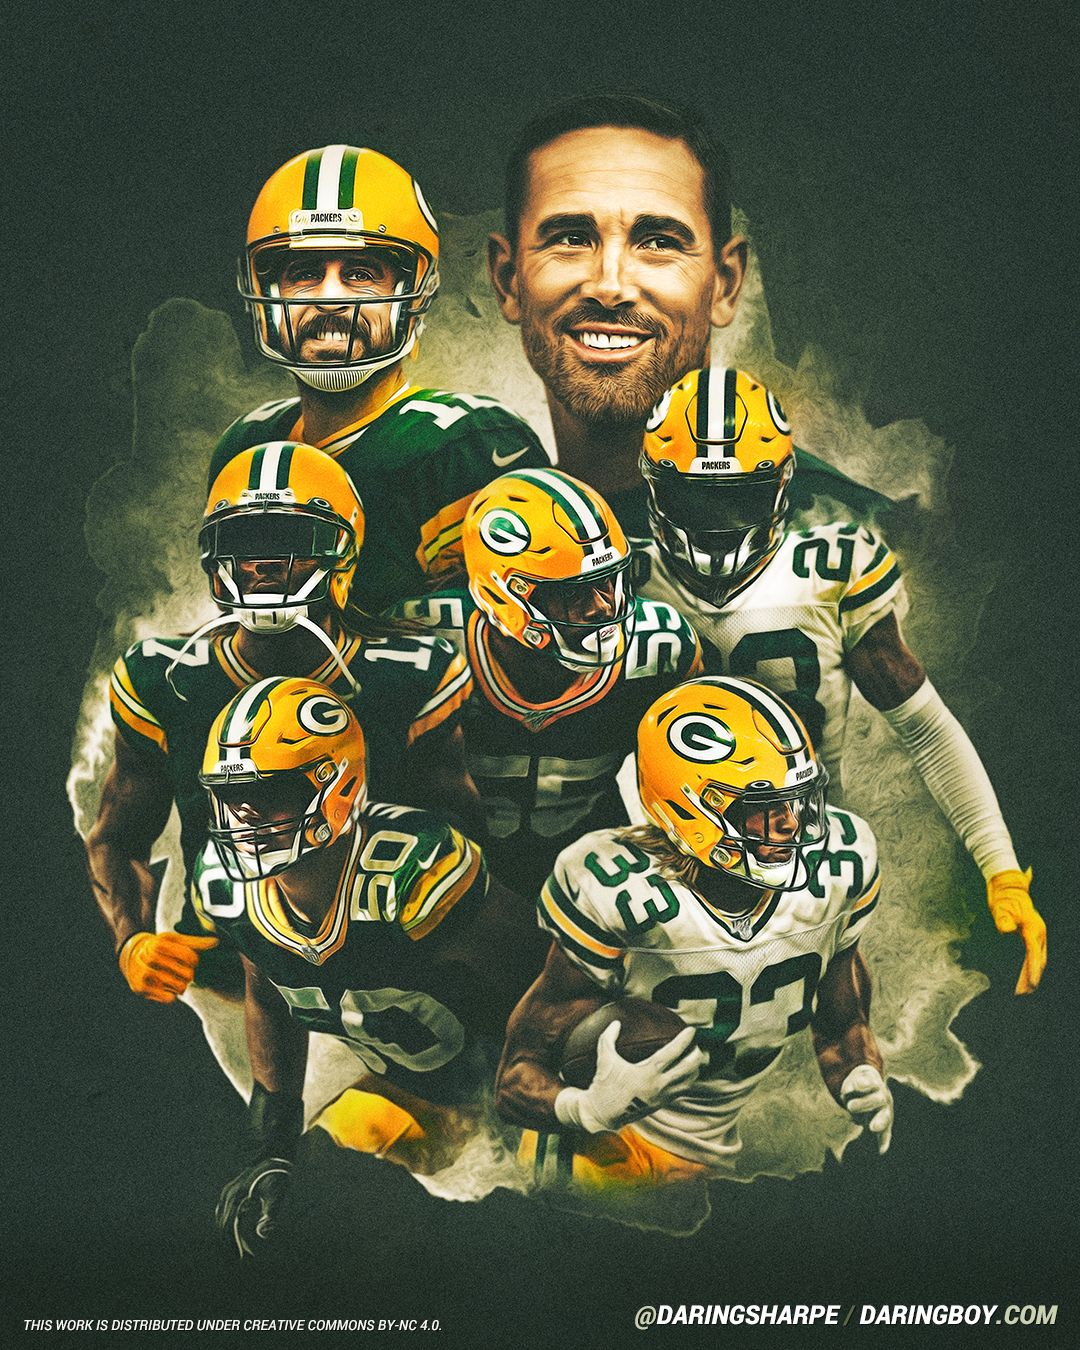 Aaron Rodgers Wallpaper Leader Of The Pack Green Bay Packers Wallpaper Green Bay Packers Green Bay Packers Jerseys